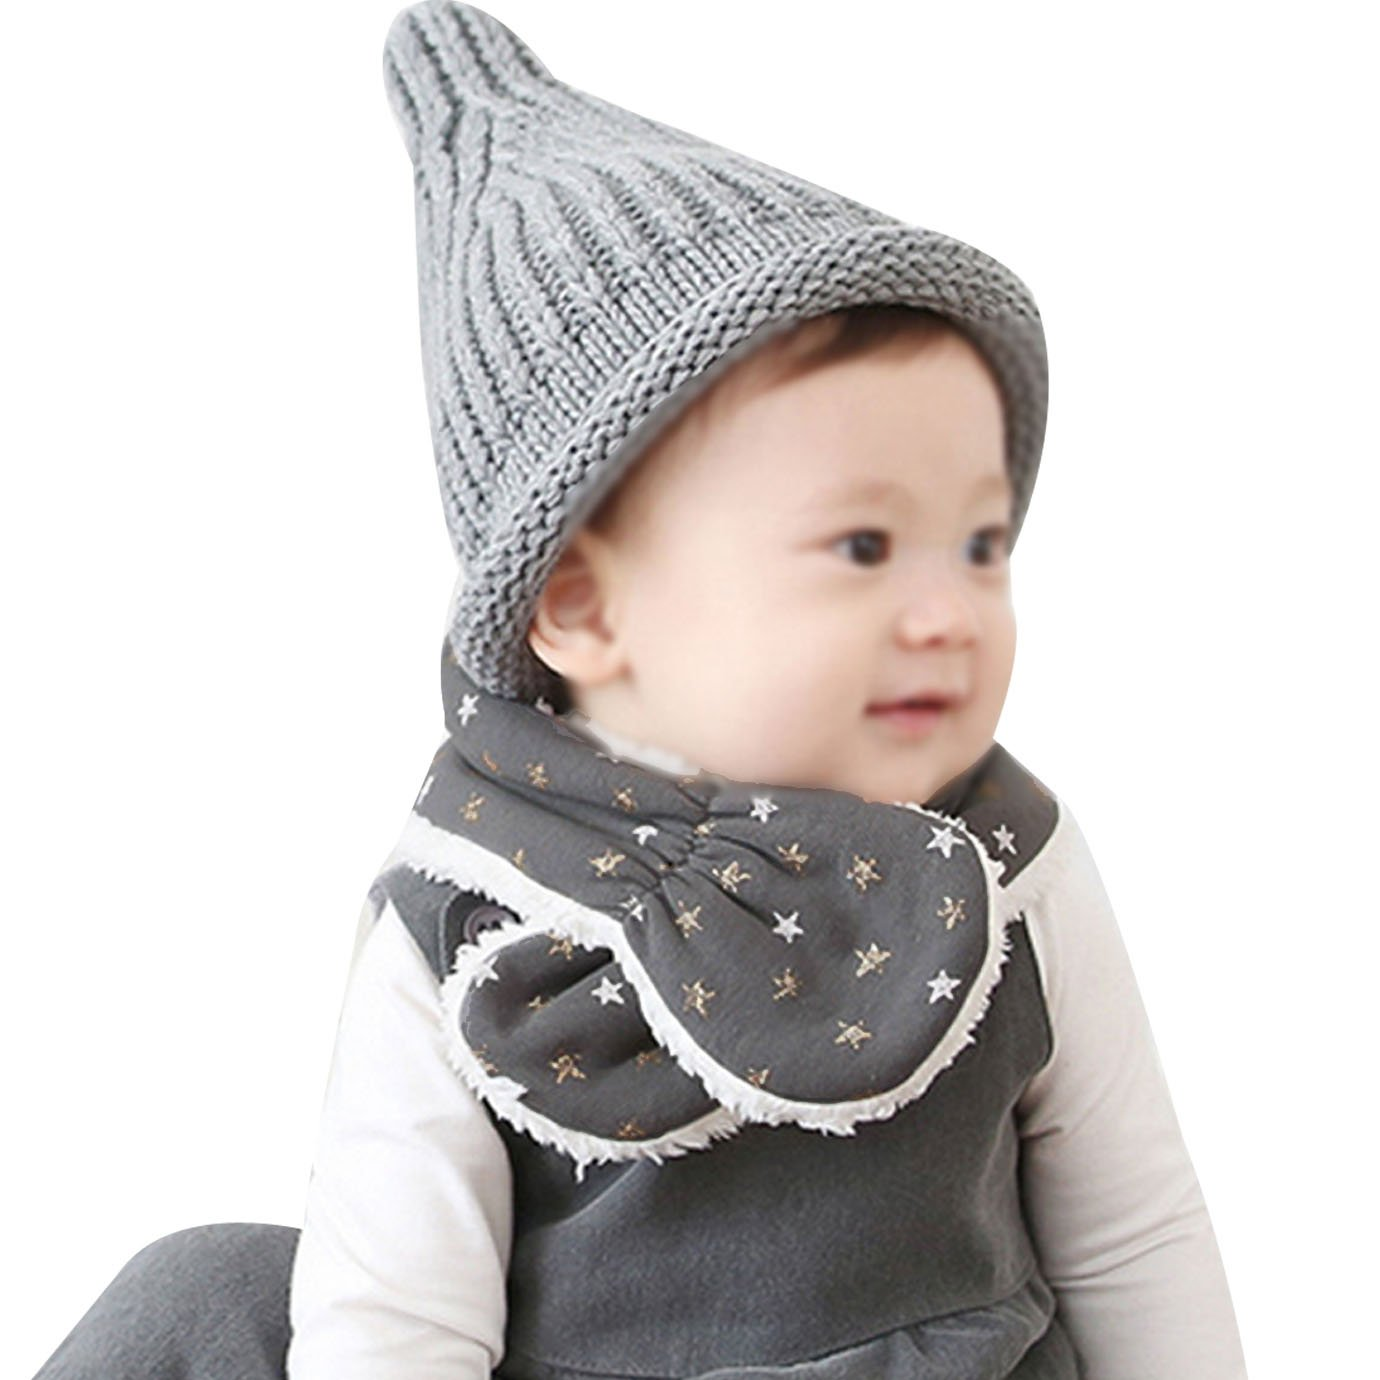 Editha Babies Kids Cute Stars Pattern Plush Scarf Neckerchief Collar Boys Girls Autumn Winter Warm Scarves Shawls Collars Wraps Gray